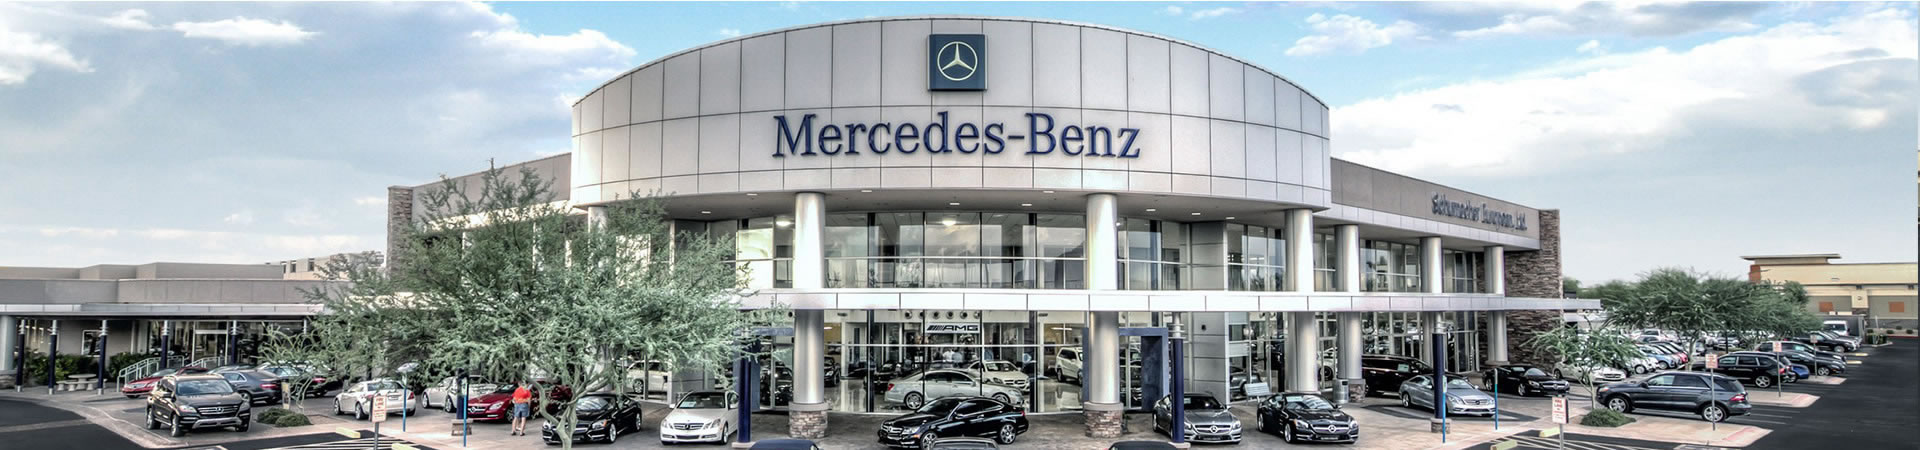 Mercedes-Benz-Delaership-Sign